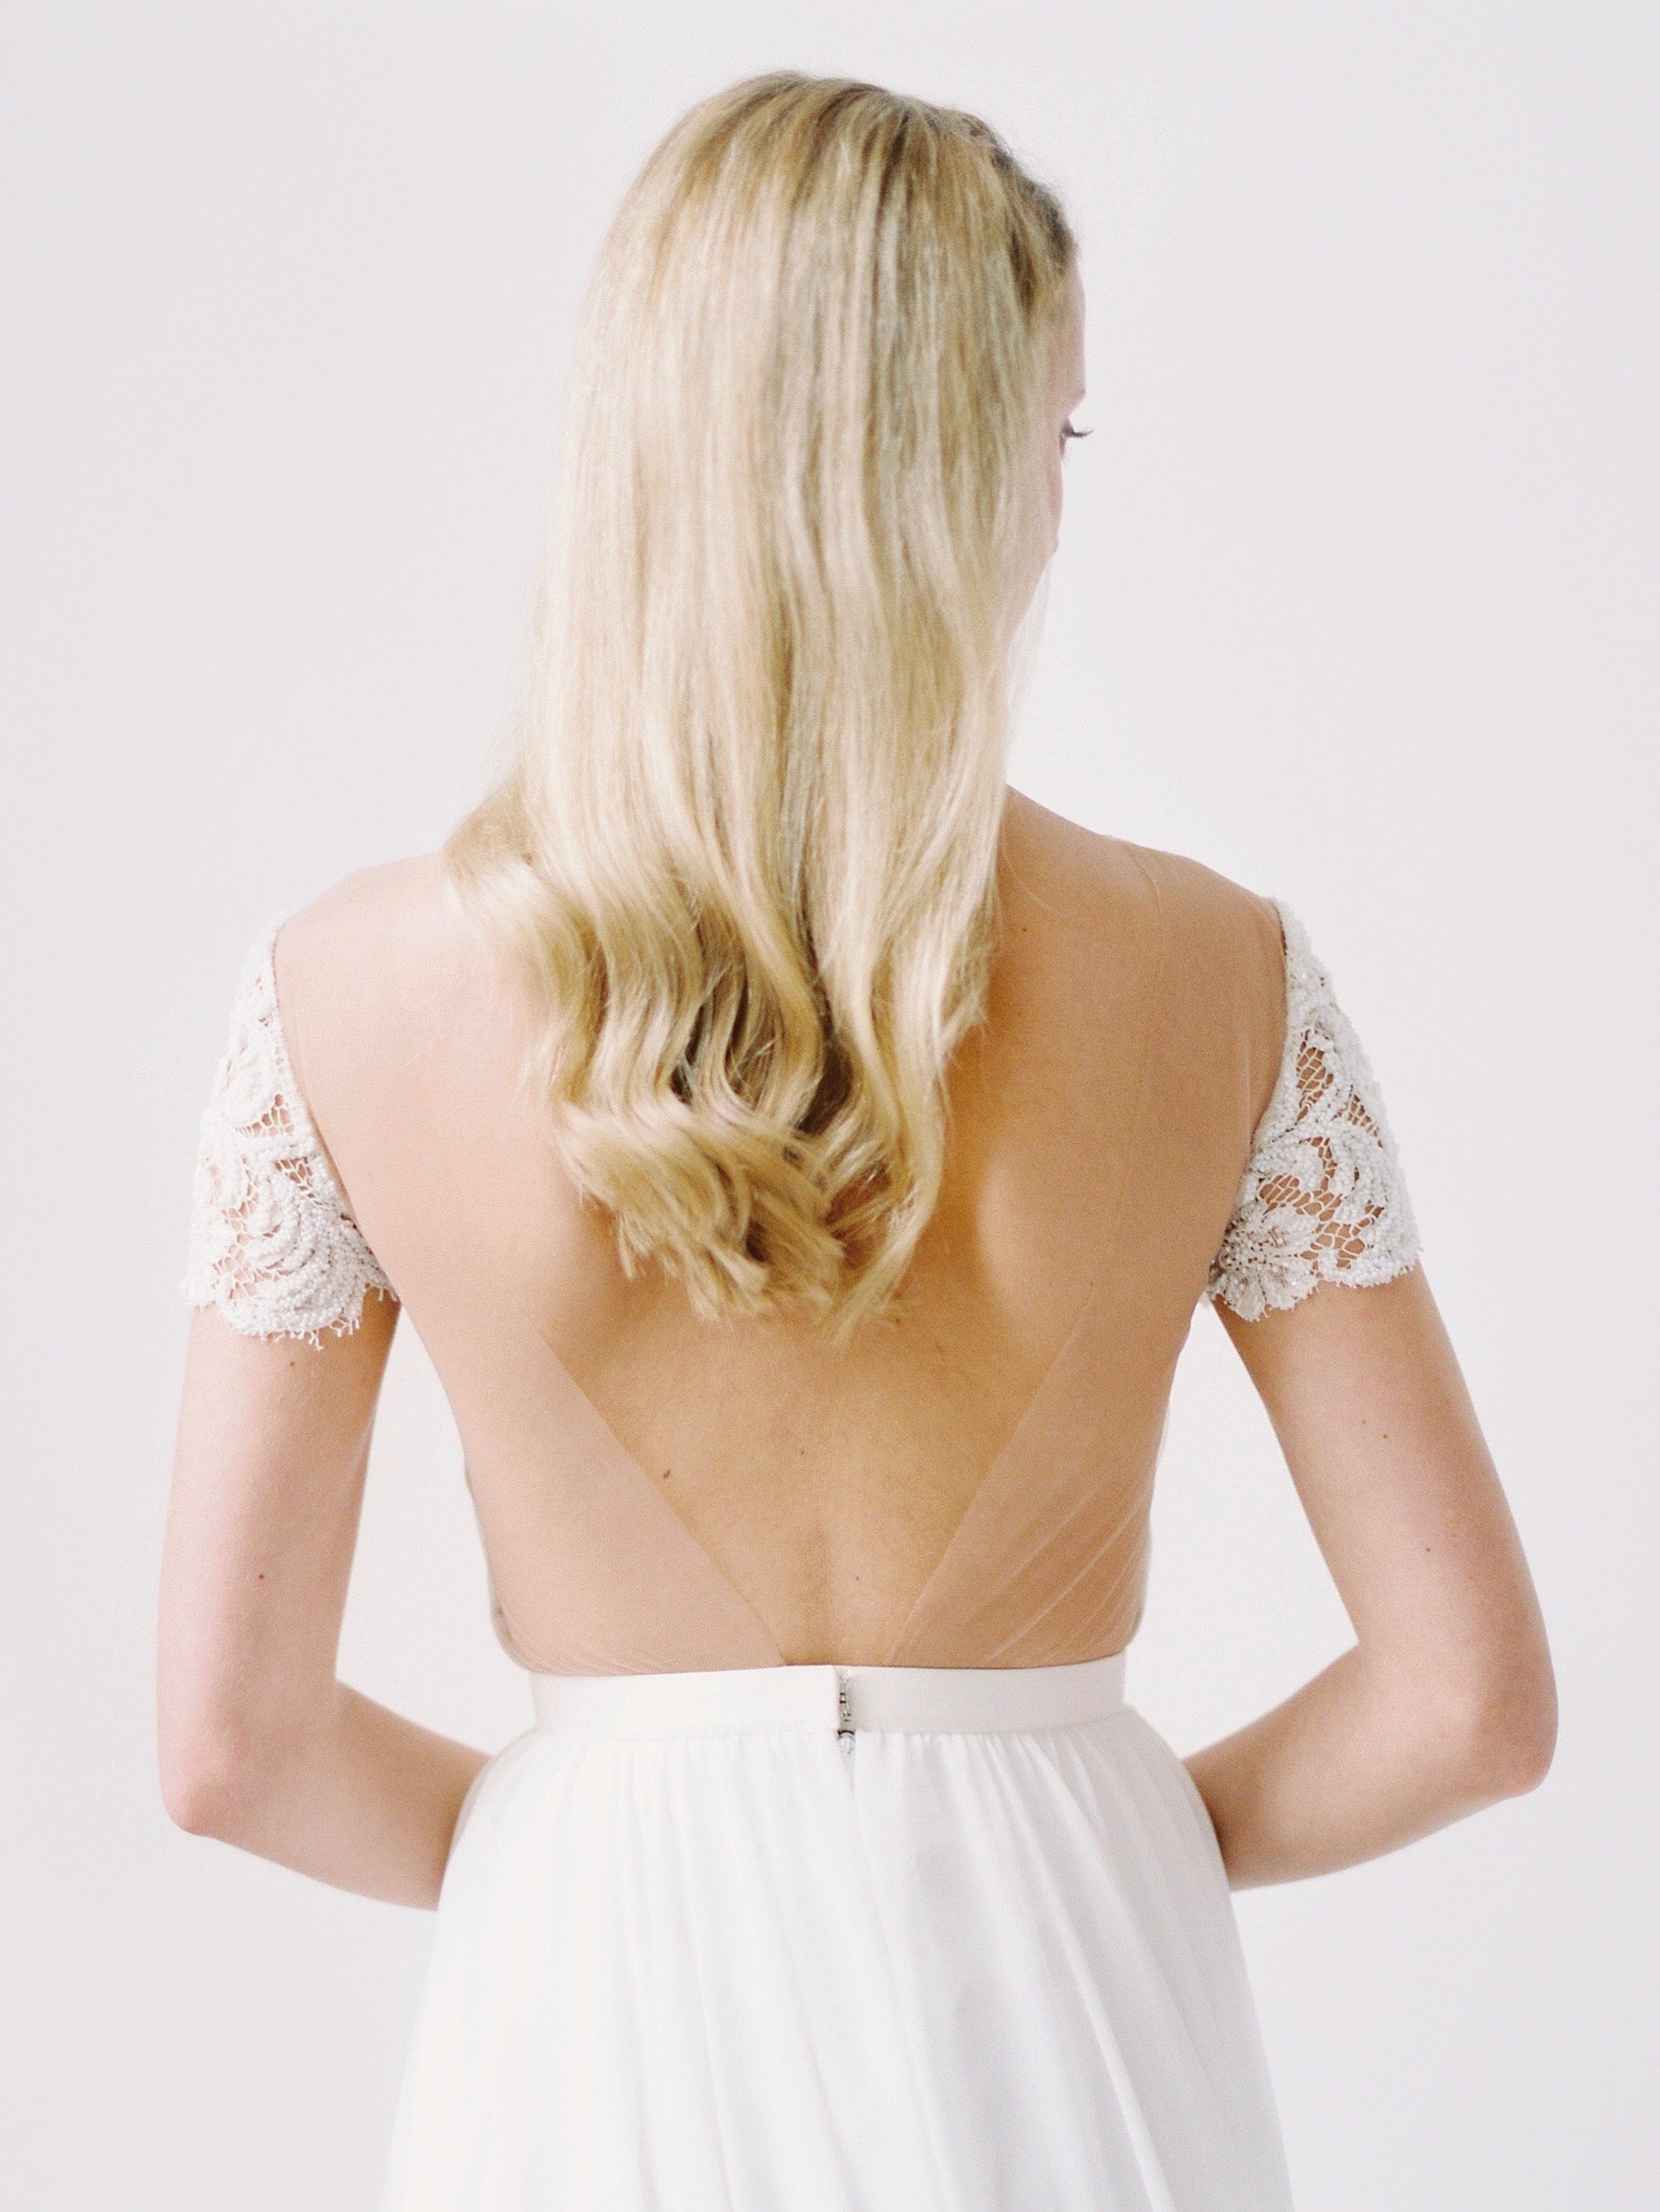 Romantic wedding dress with a wide open back and beaded cap sleeves